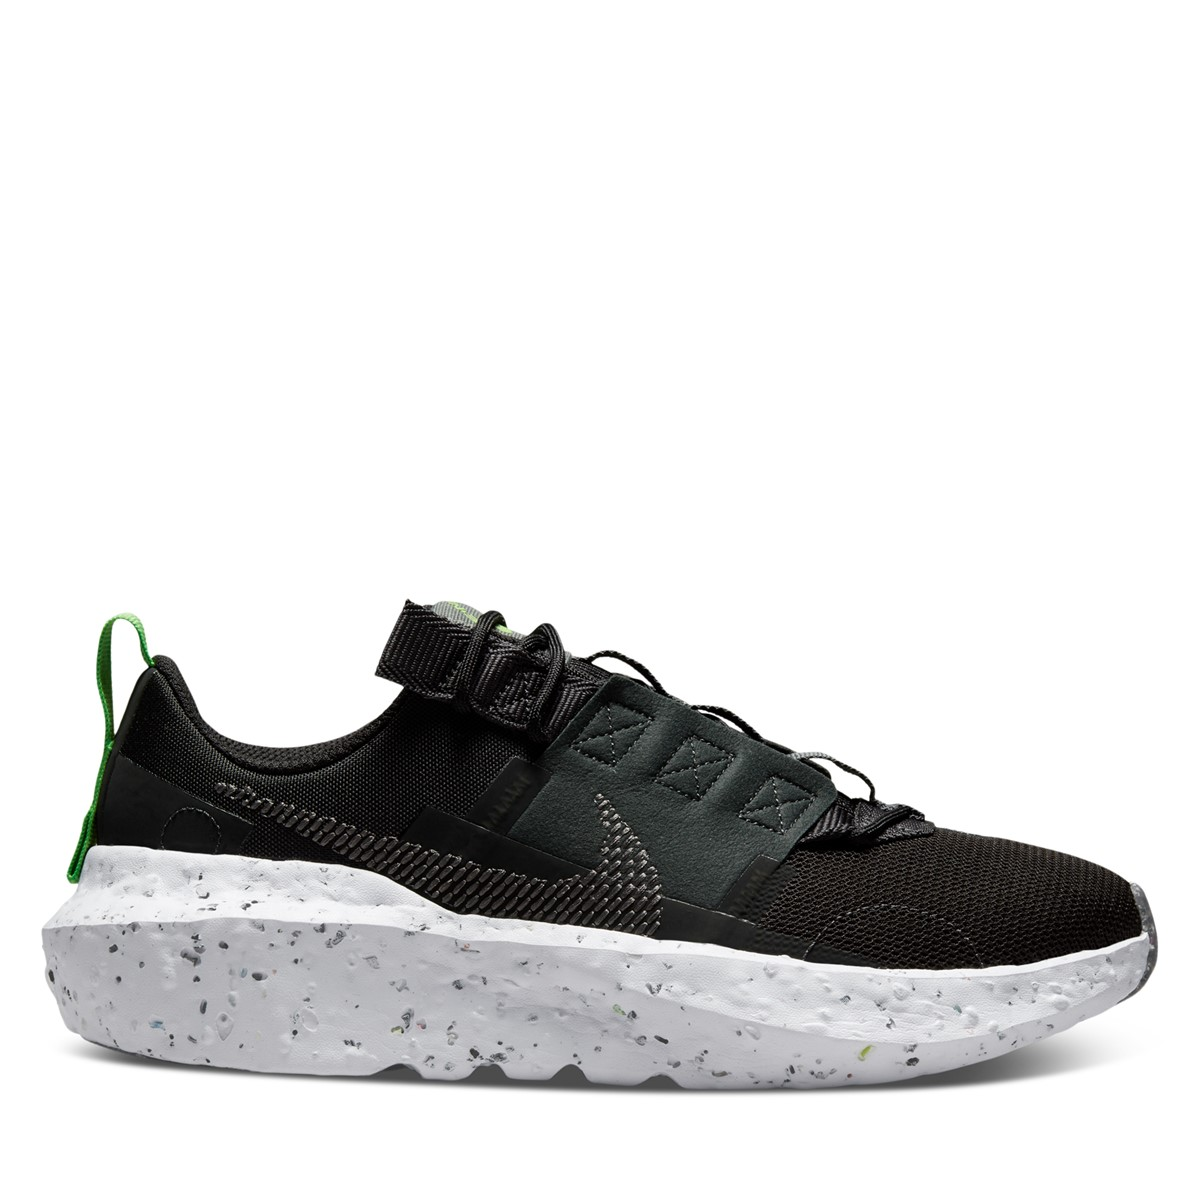 Women's Nike Crater Impact Sneakers in Black/White